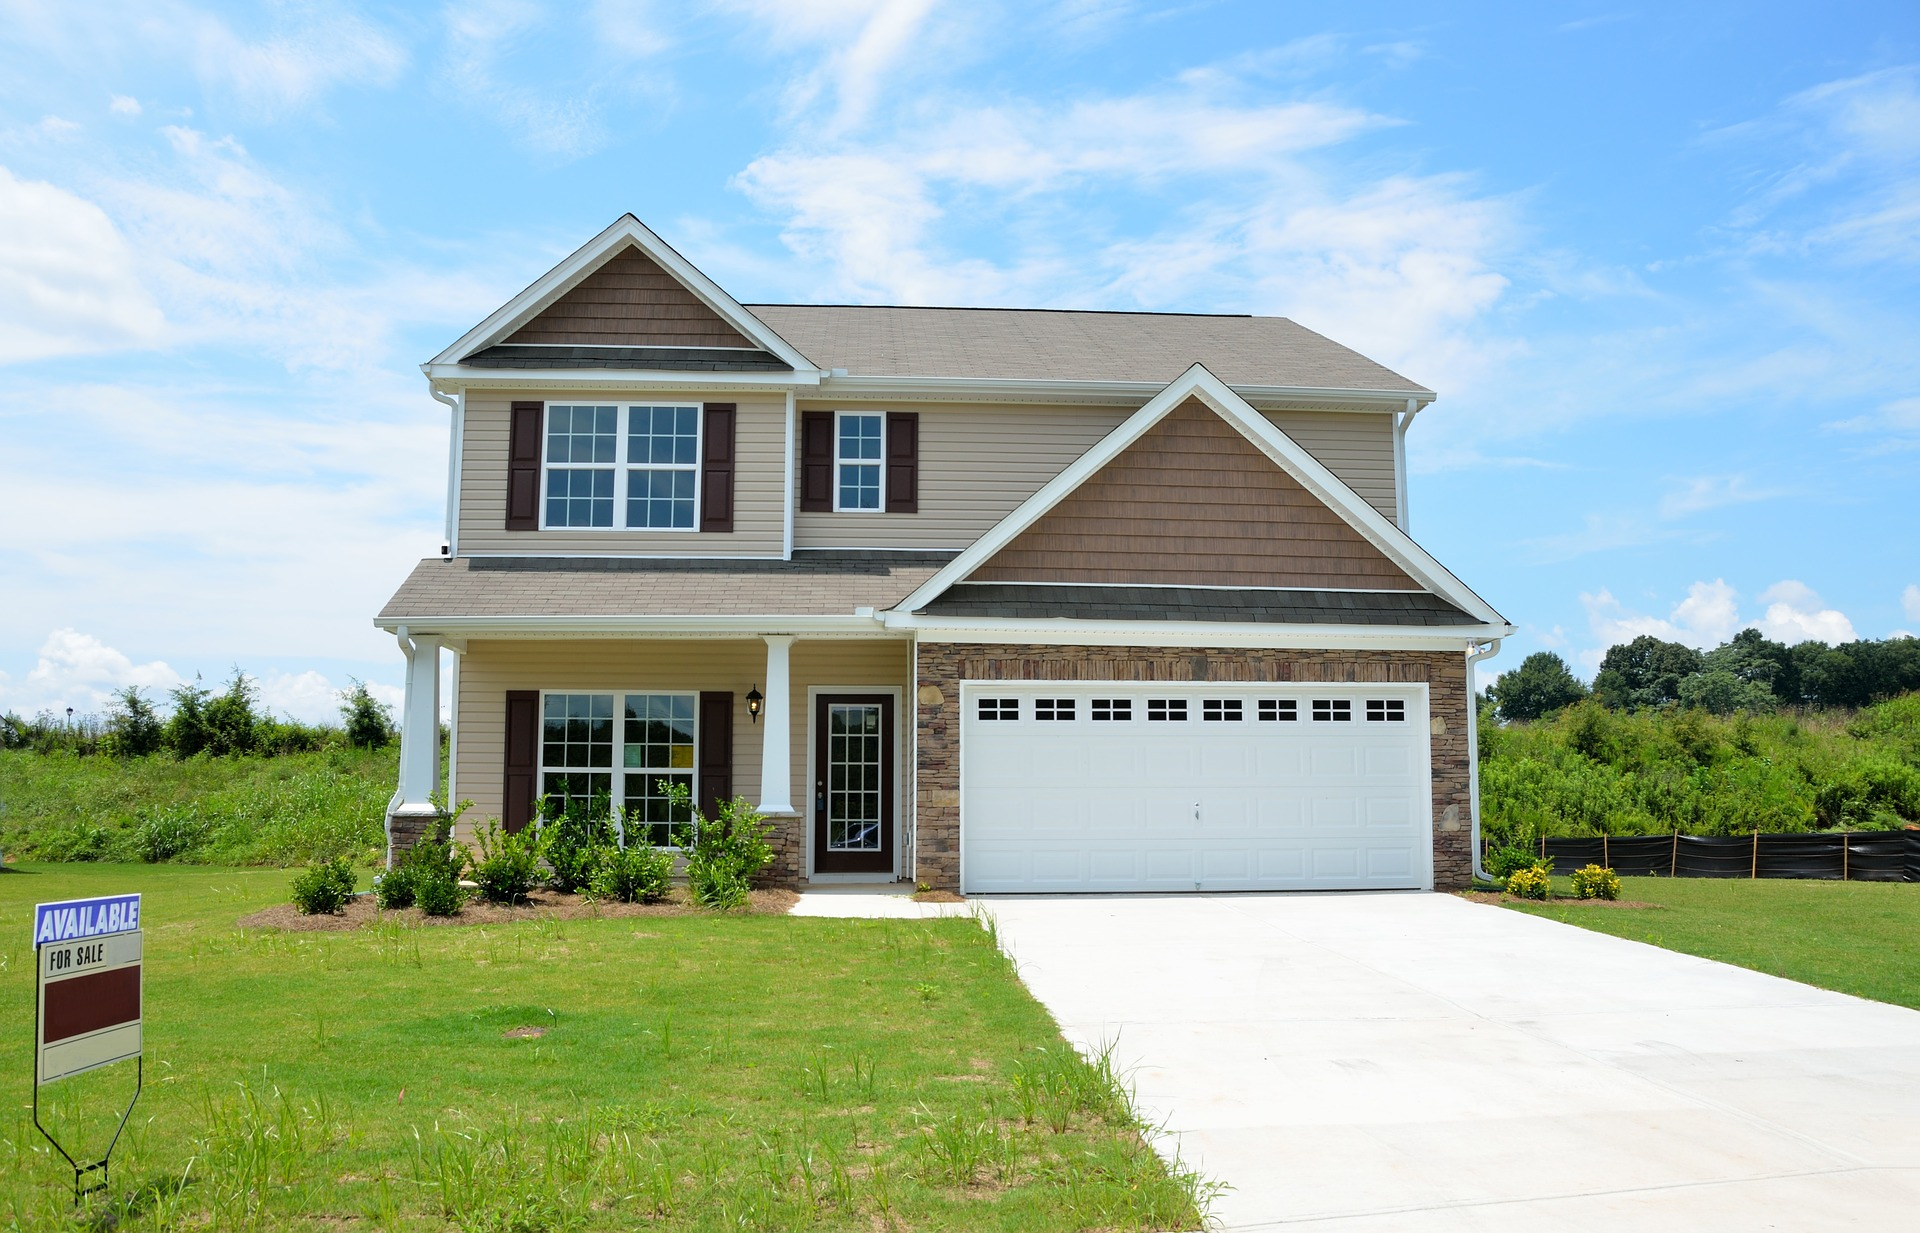 Home Ownership 101: What Is a Mortgage Loan?